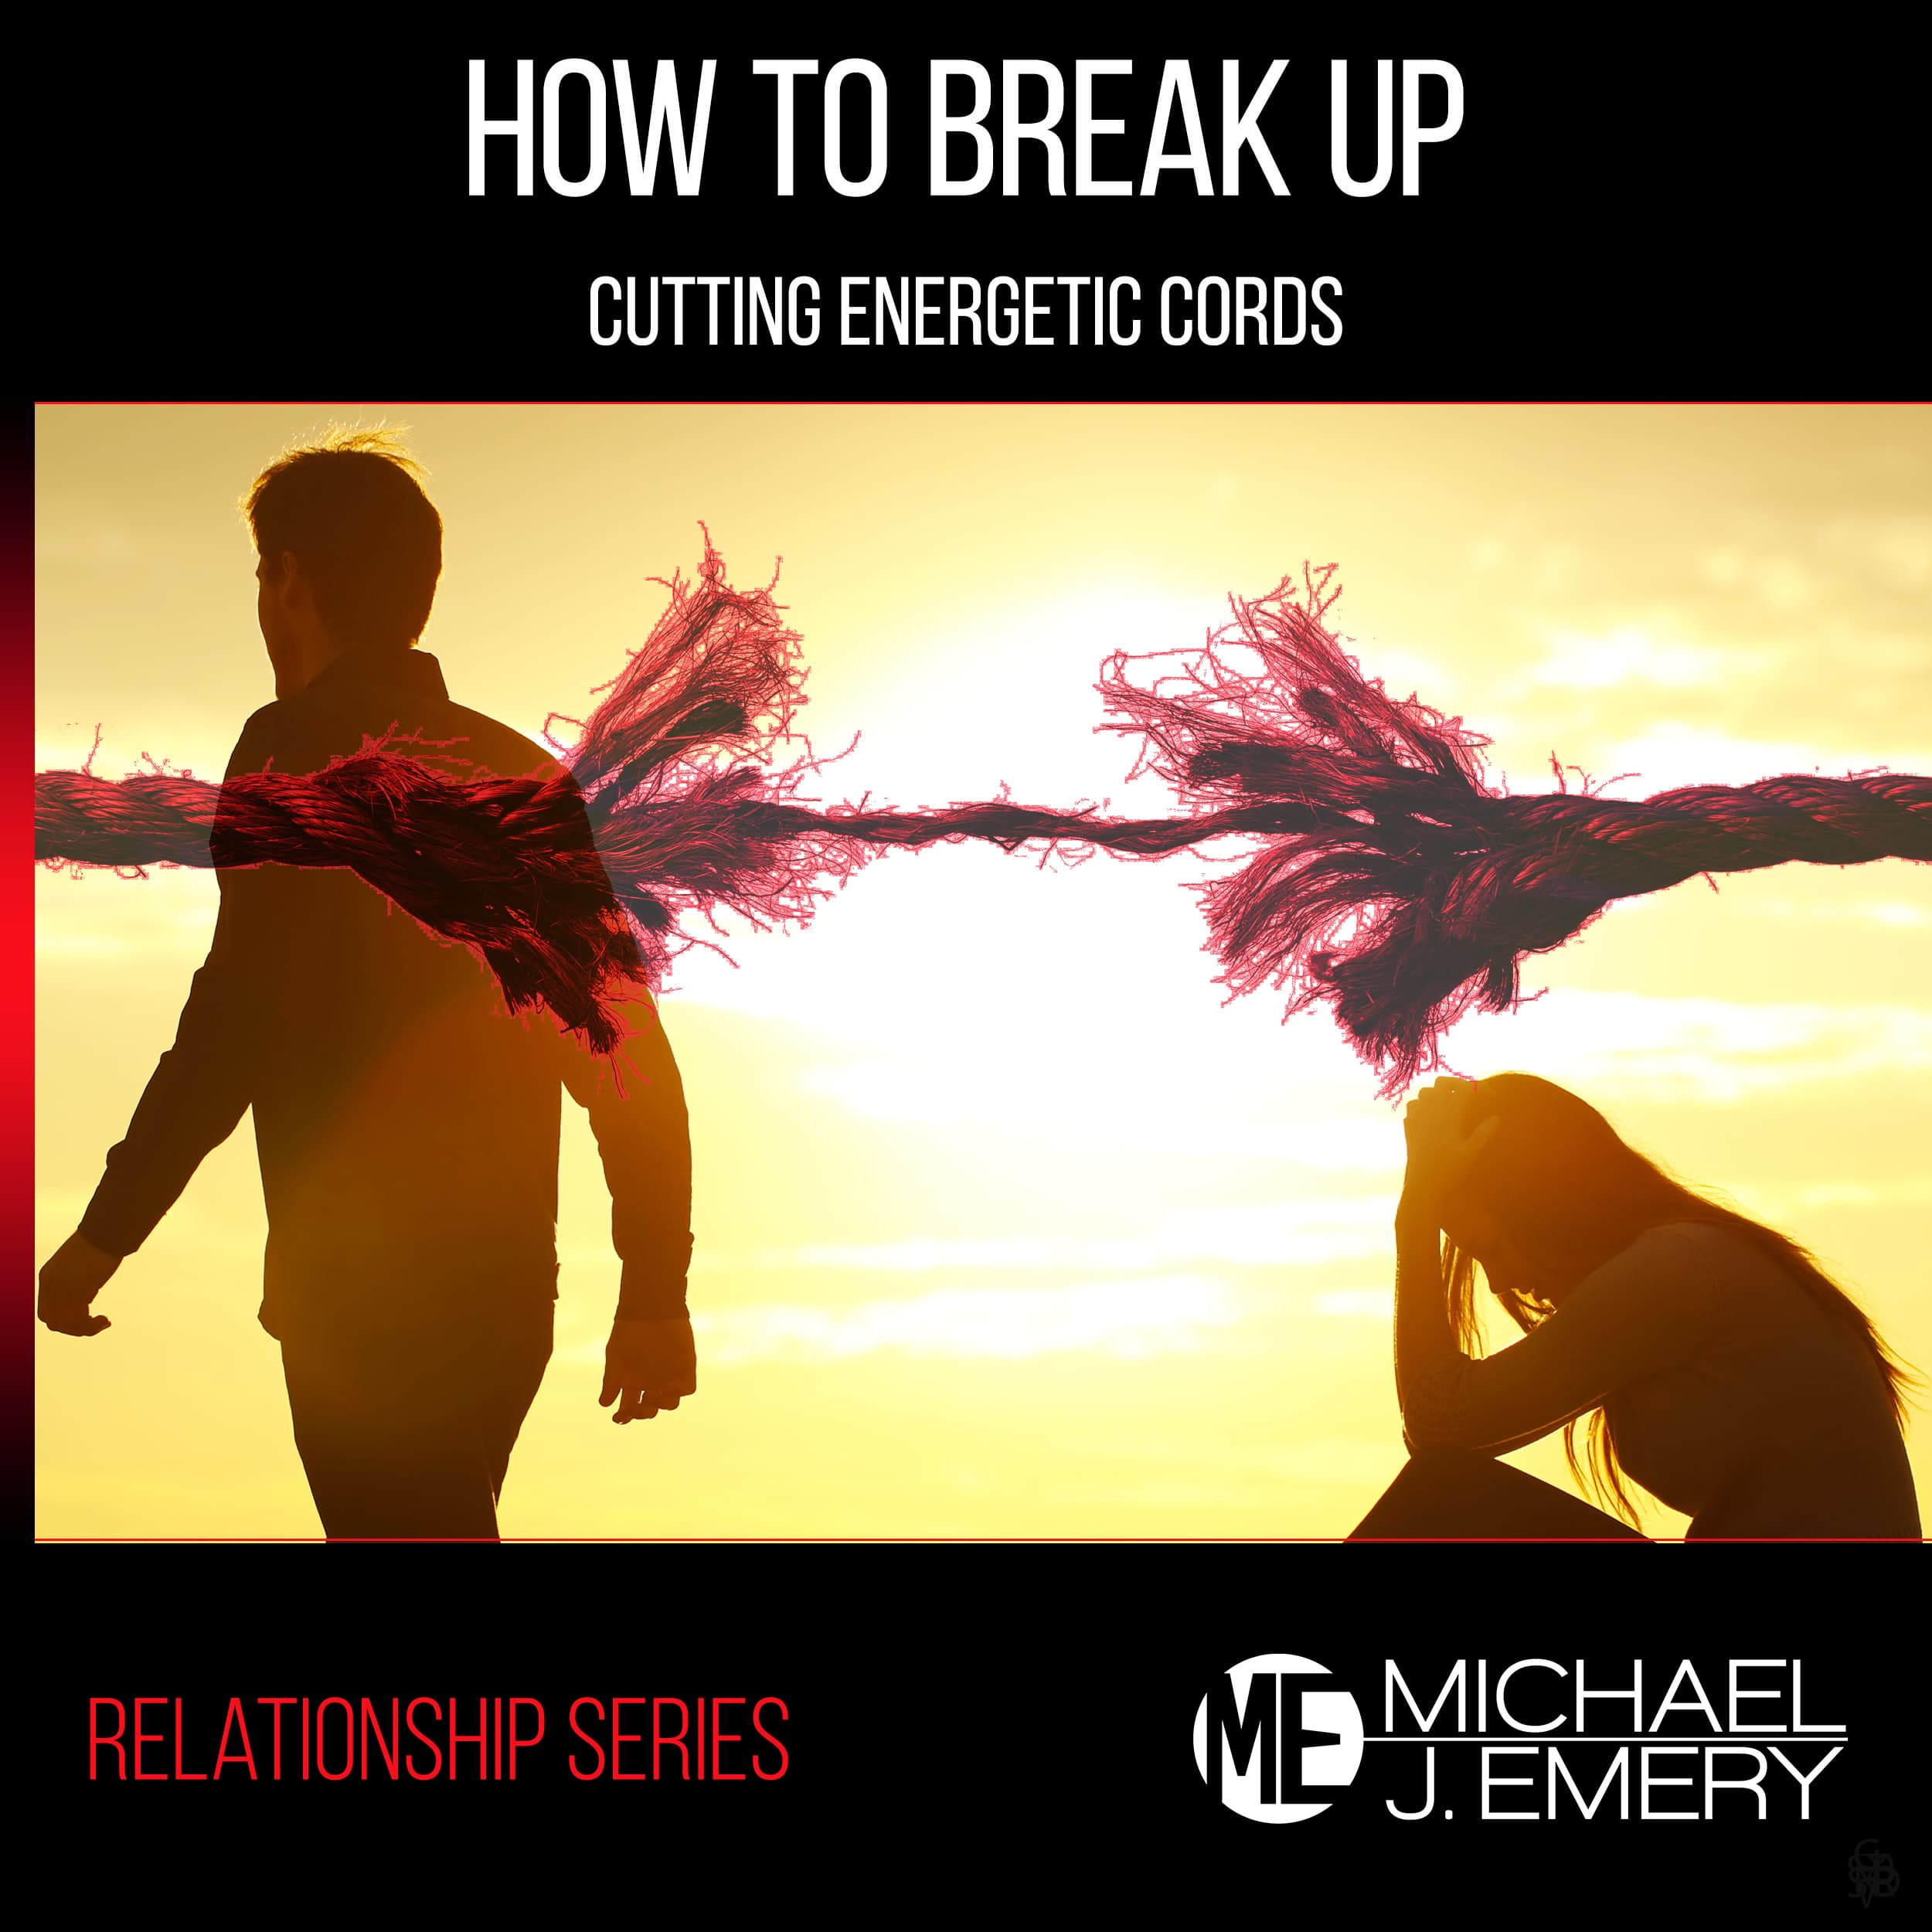 How-to-Break-Up-Cutting-Energetic-Cords